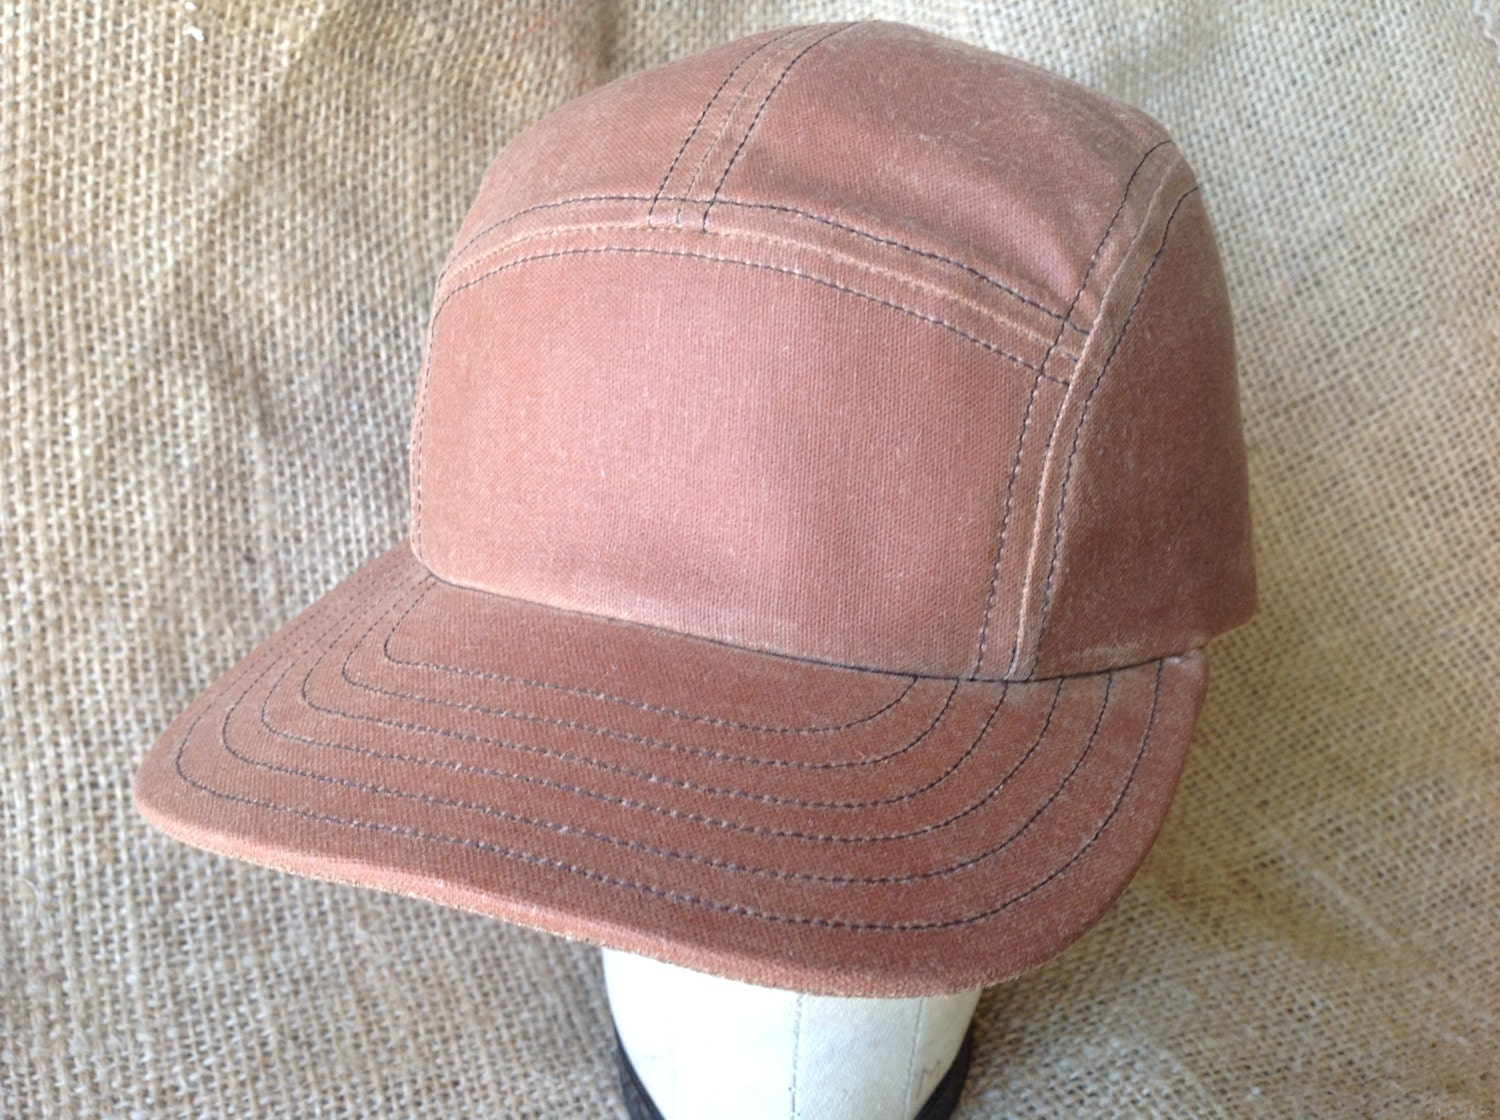 e19a1d645316f Waxed Cotton 5 panel cap. Available in dark brown light brown